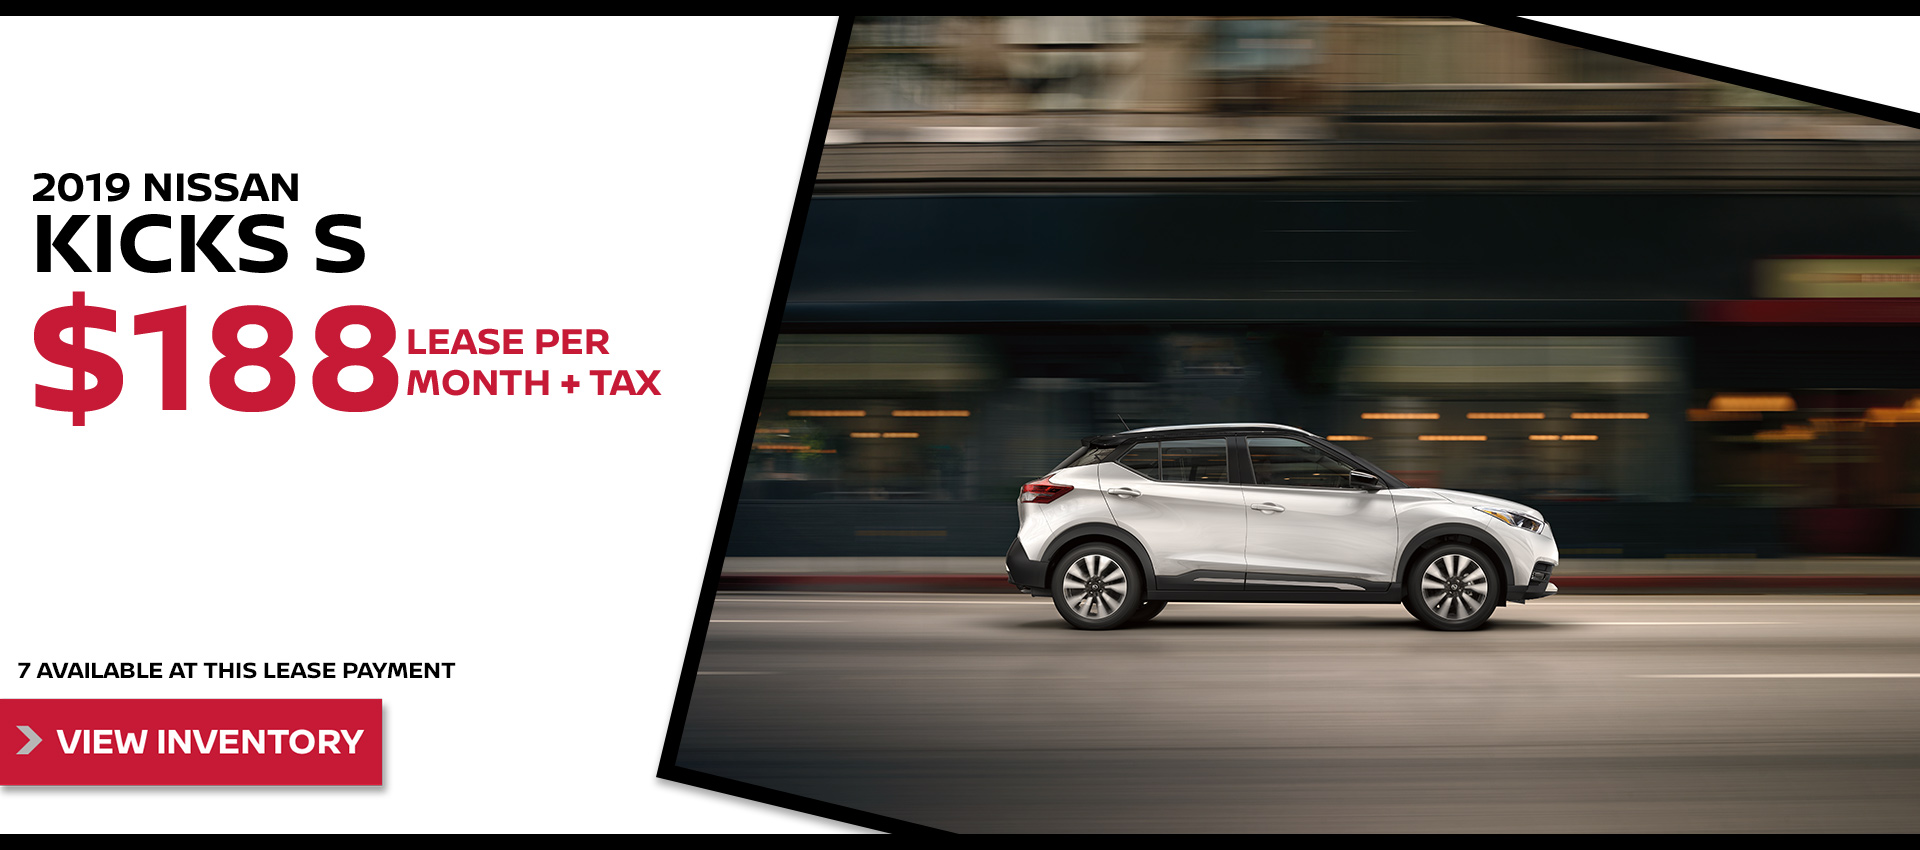 Mossy Nissan - Kicks $188 Lease HP